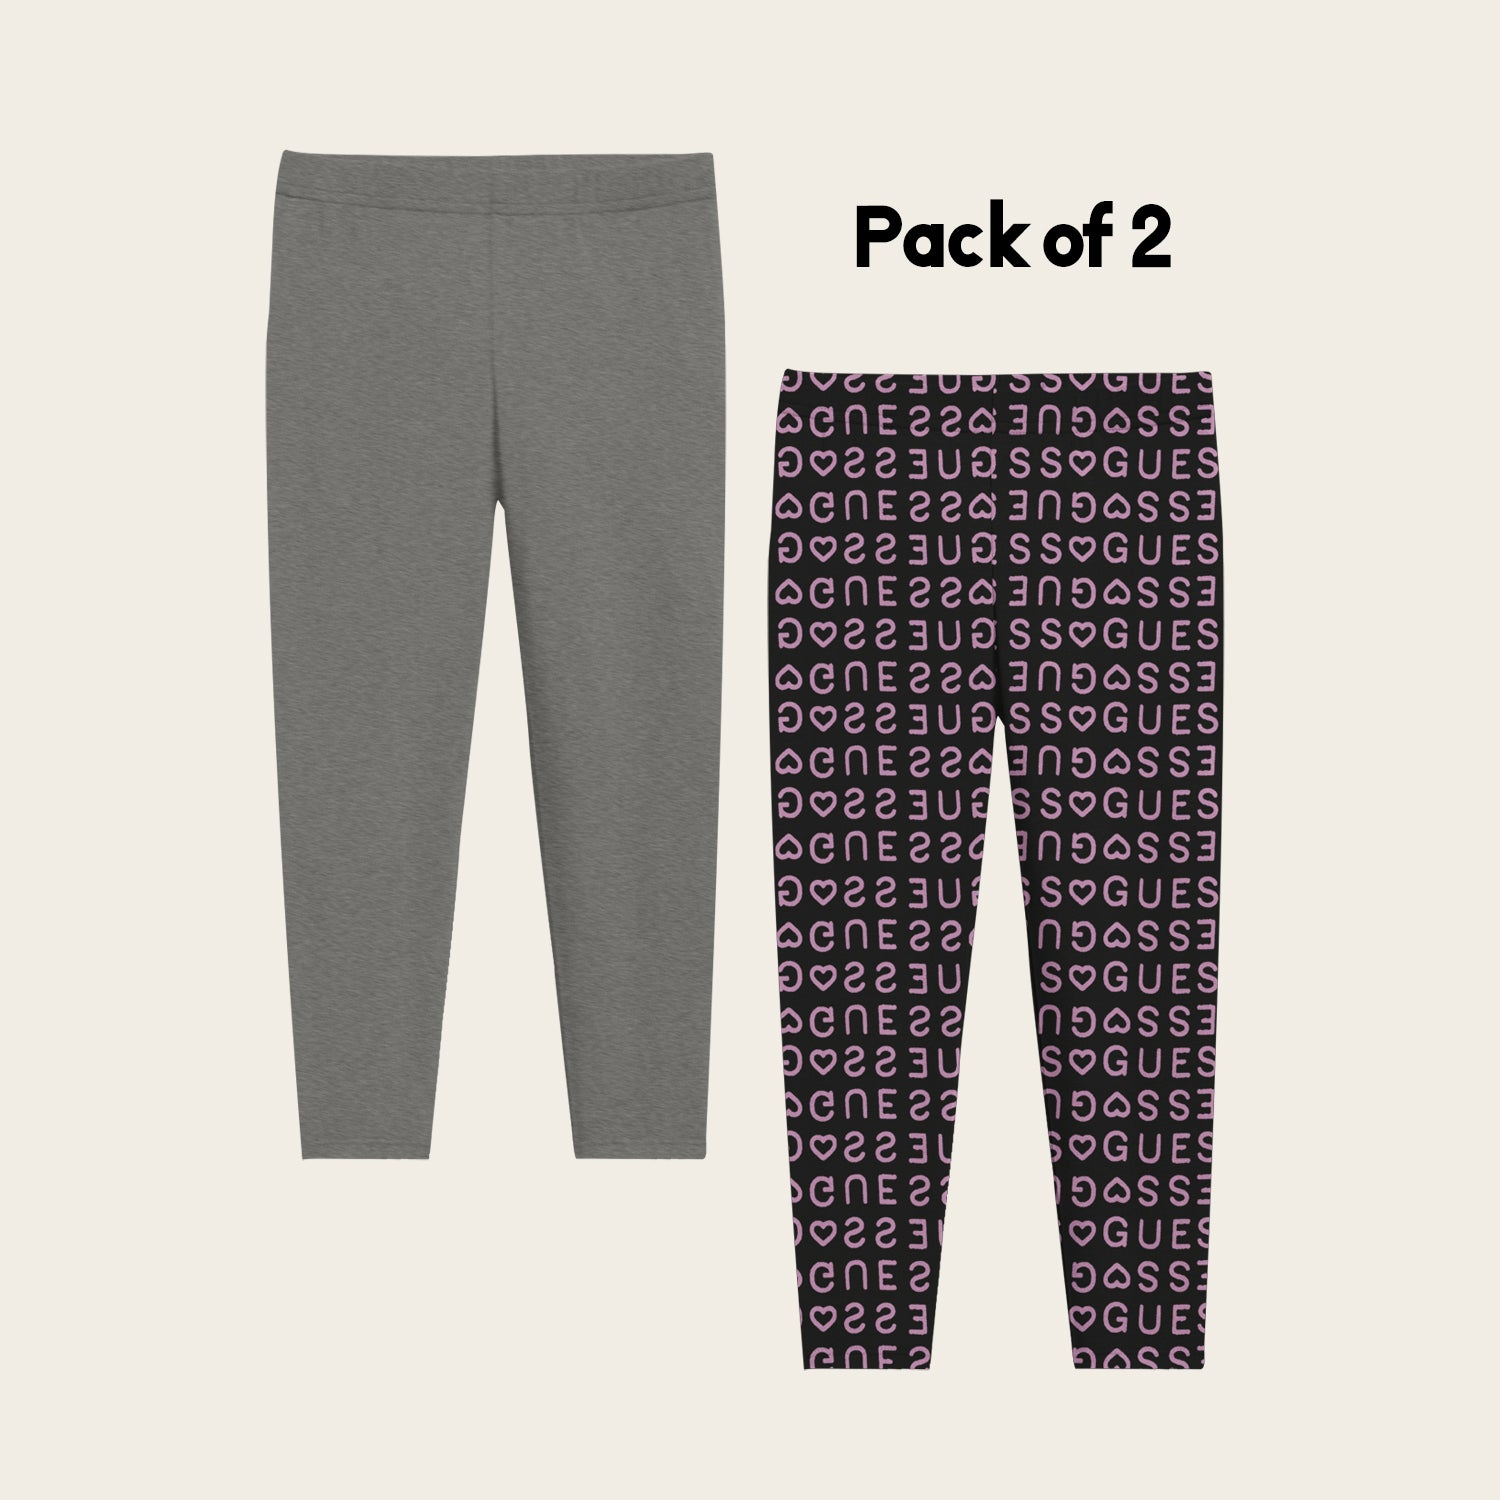 Pack Of 2 Guess Stylish Legging For Girls-Dark Grey Melange with Black Allover Print-BE12313